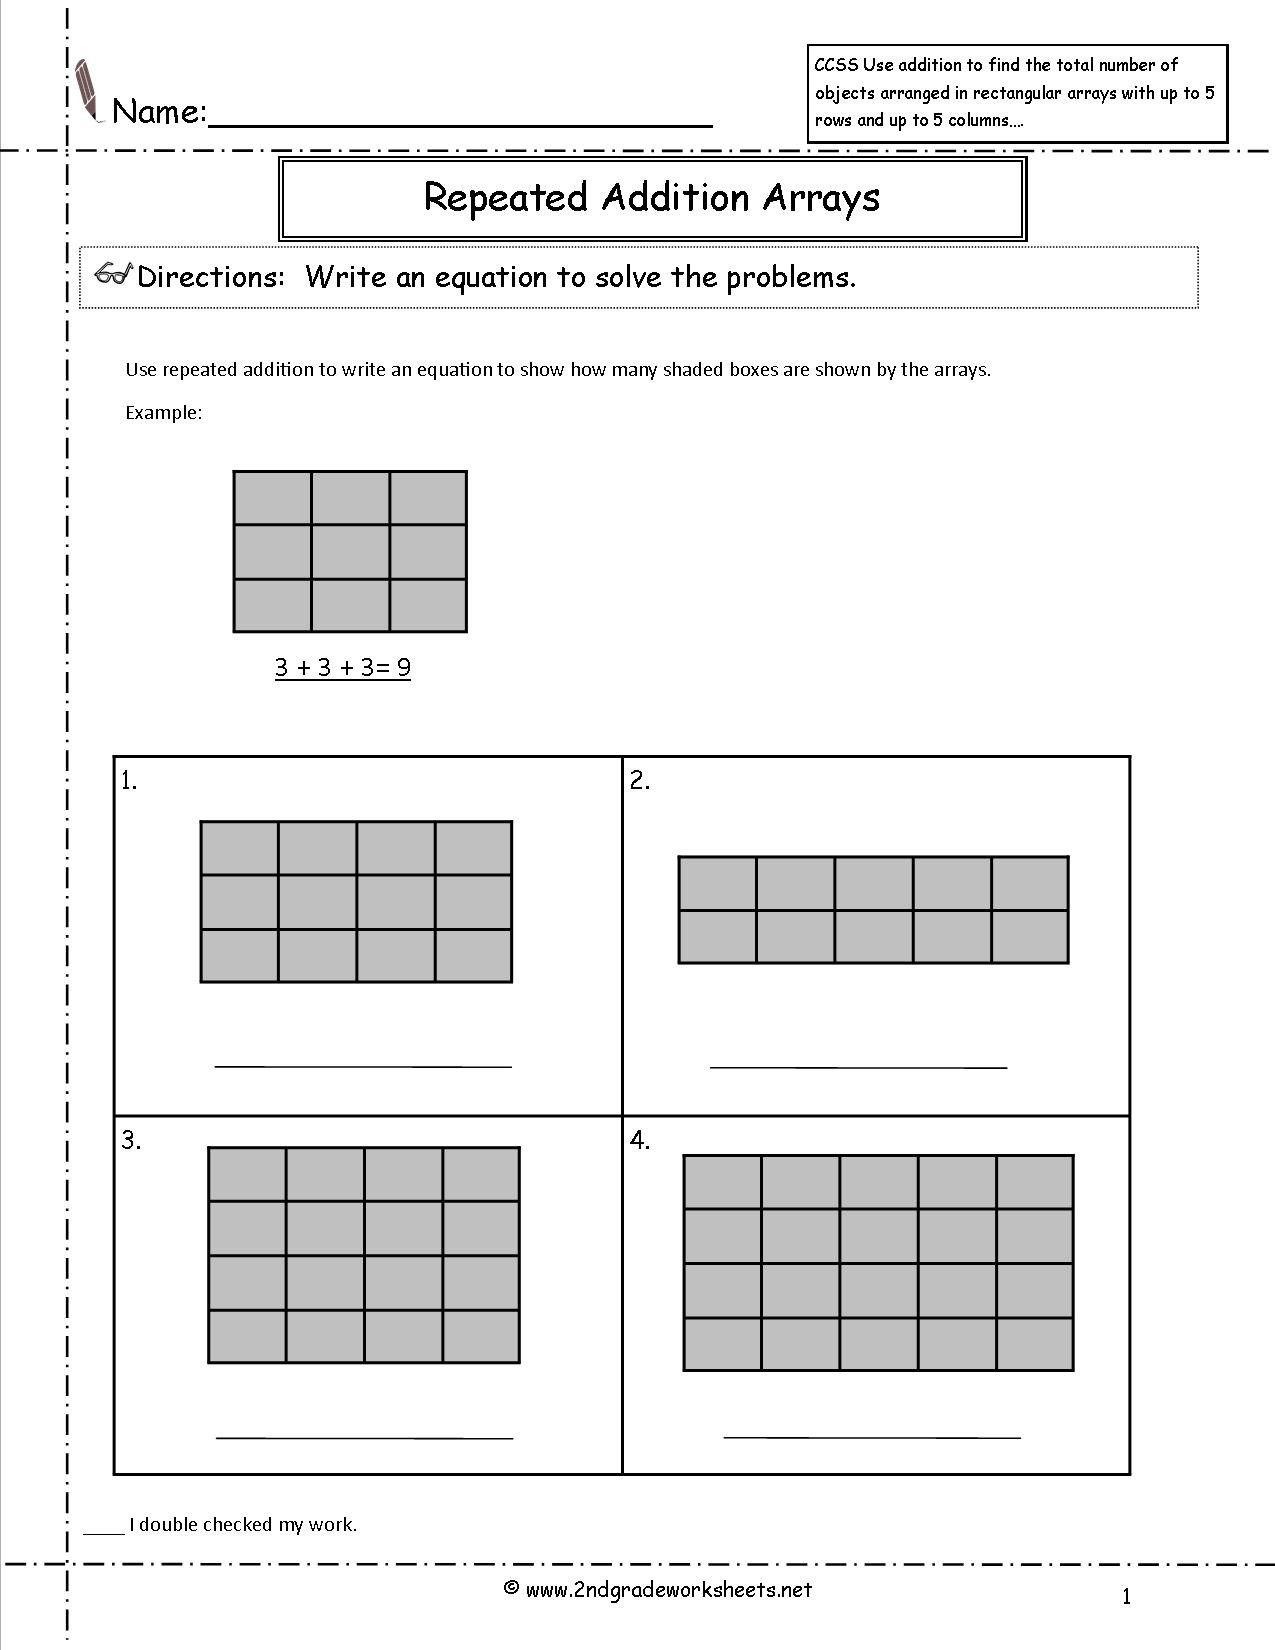 Repeated Addition Worksheets 2nd Grade Ccss 2 Oa 4 Worksheets